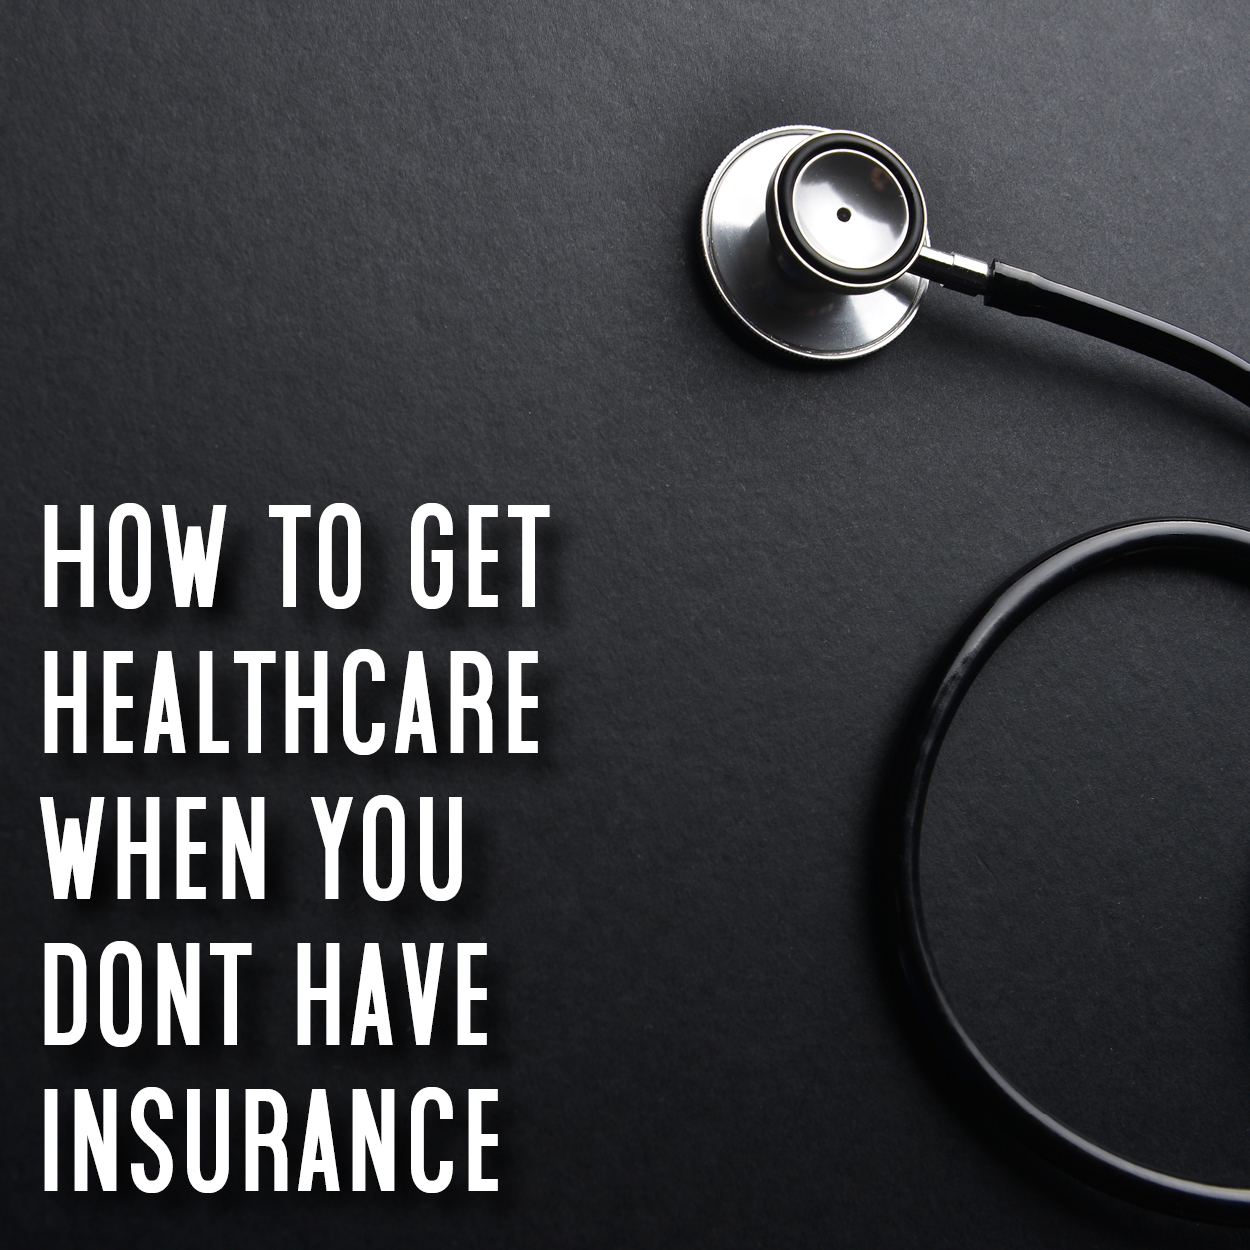 healthcare when you don't have insurance